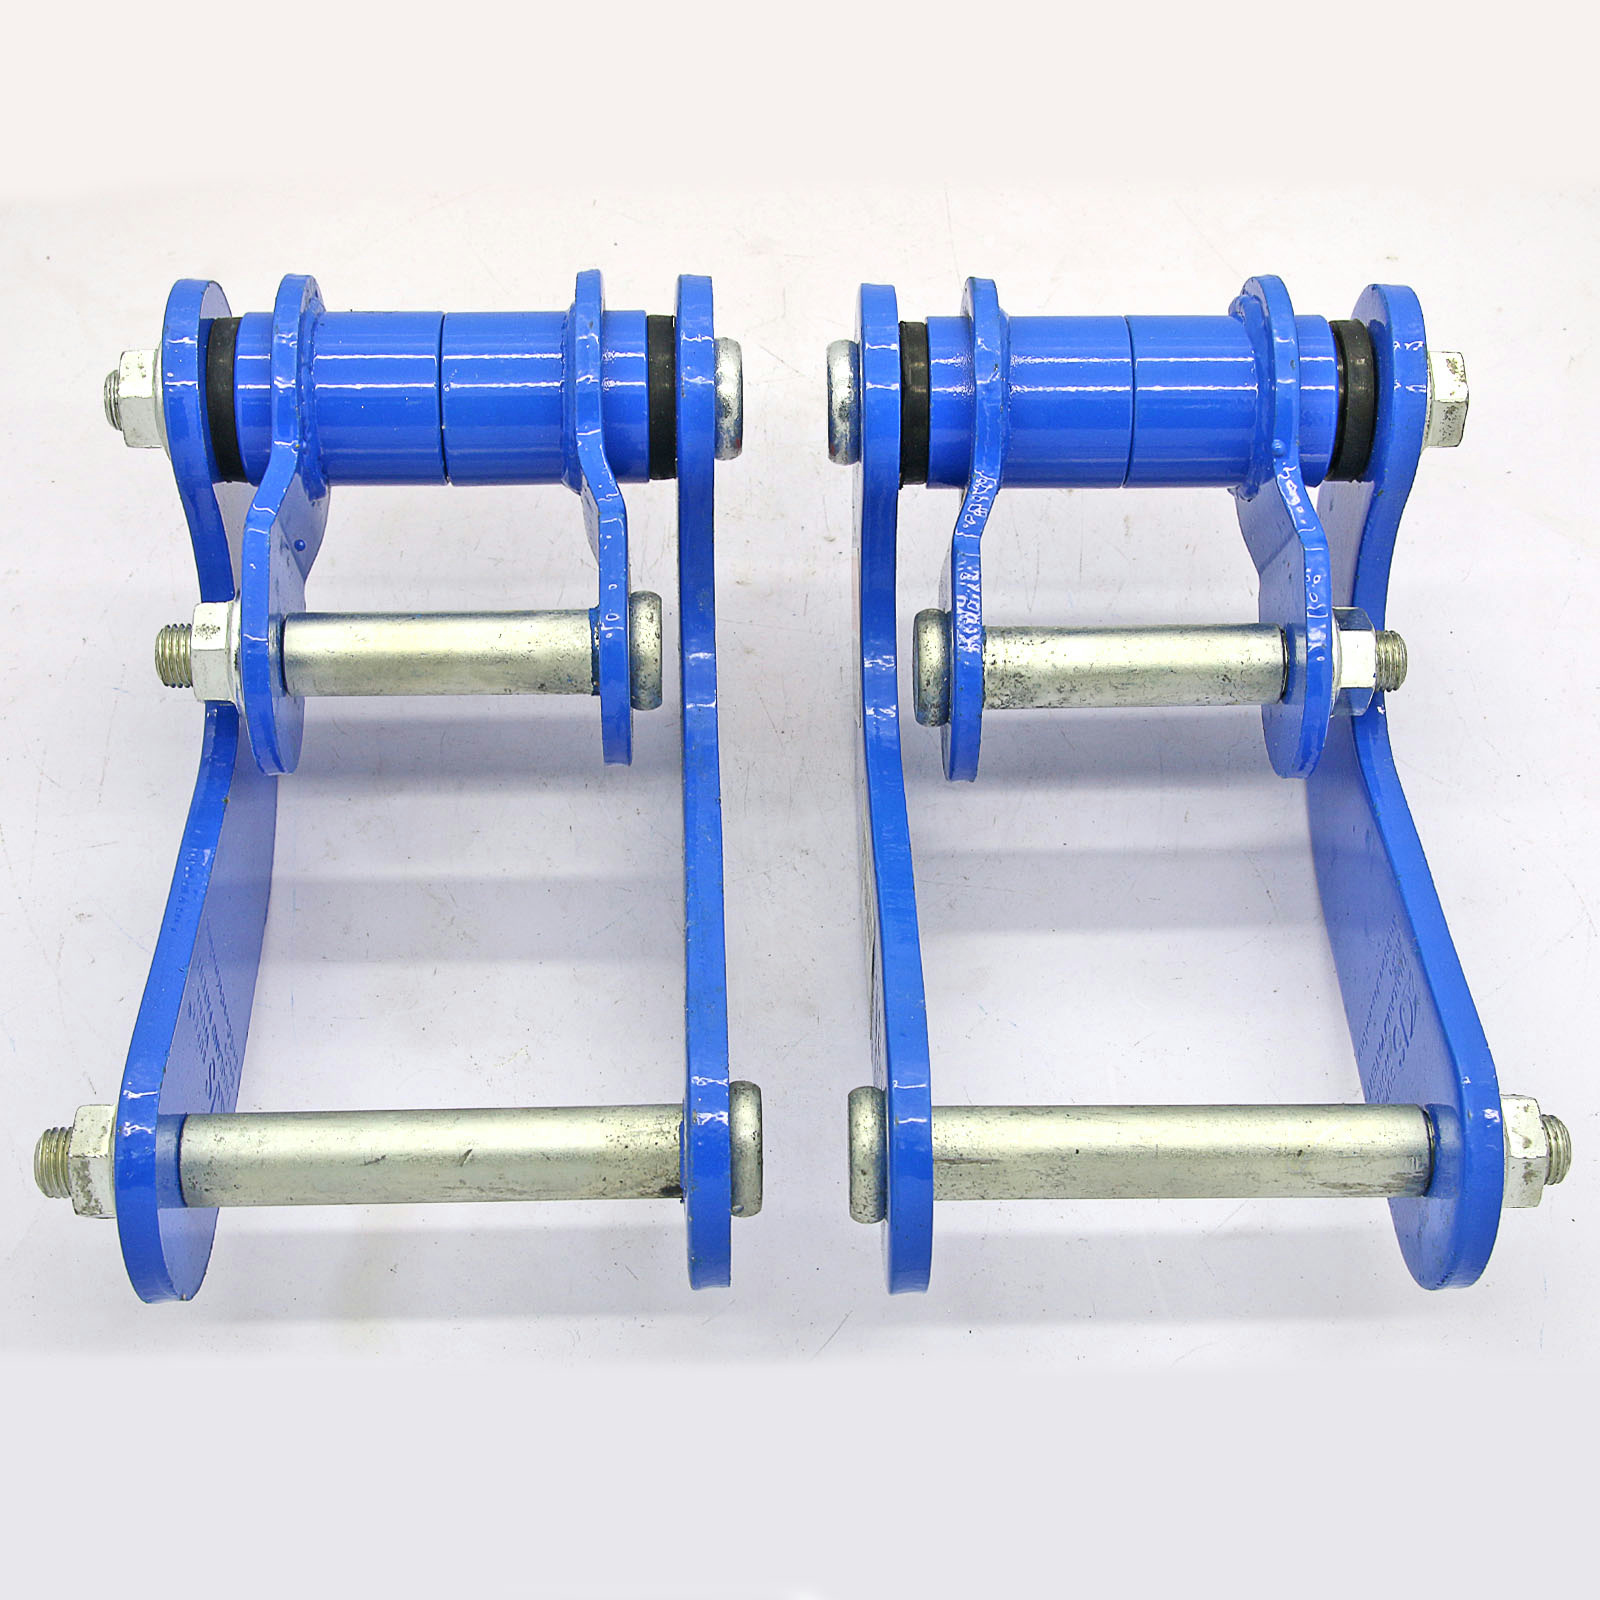 Shackle double shackles suspension isuzu holden rodeo dmax for Suspension double